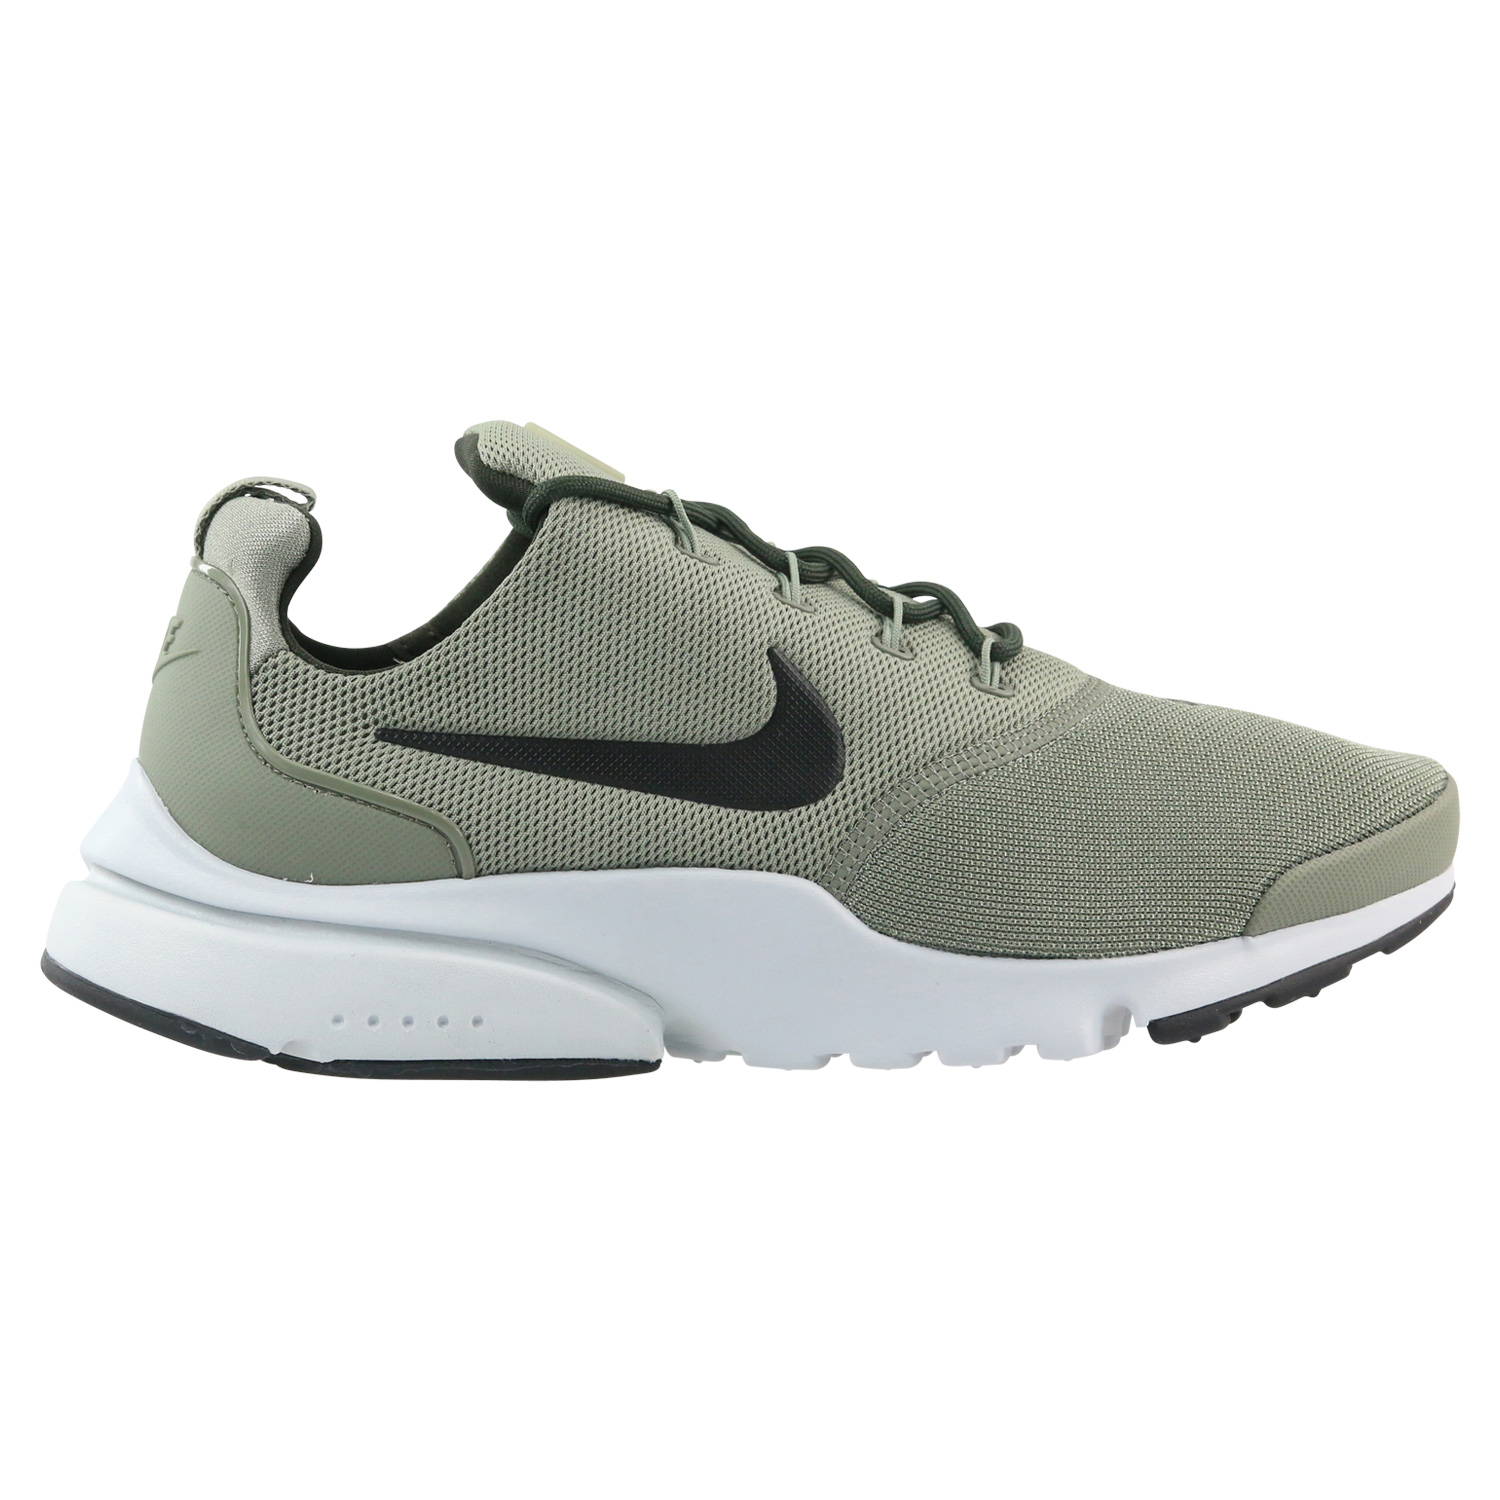 best website c0741 63714 ... Nike Presto fly fly fly Chaussures Sneaker Homme 908019- Chaussures de  sport pour hommes et ...